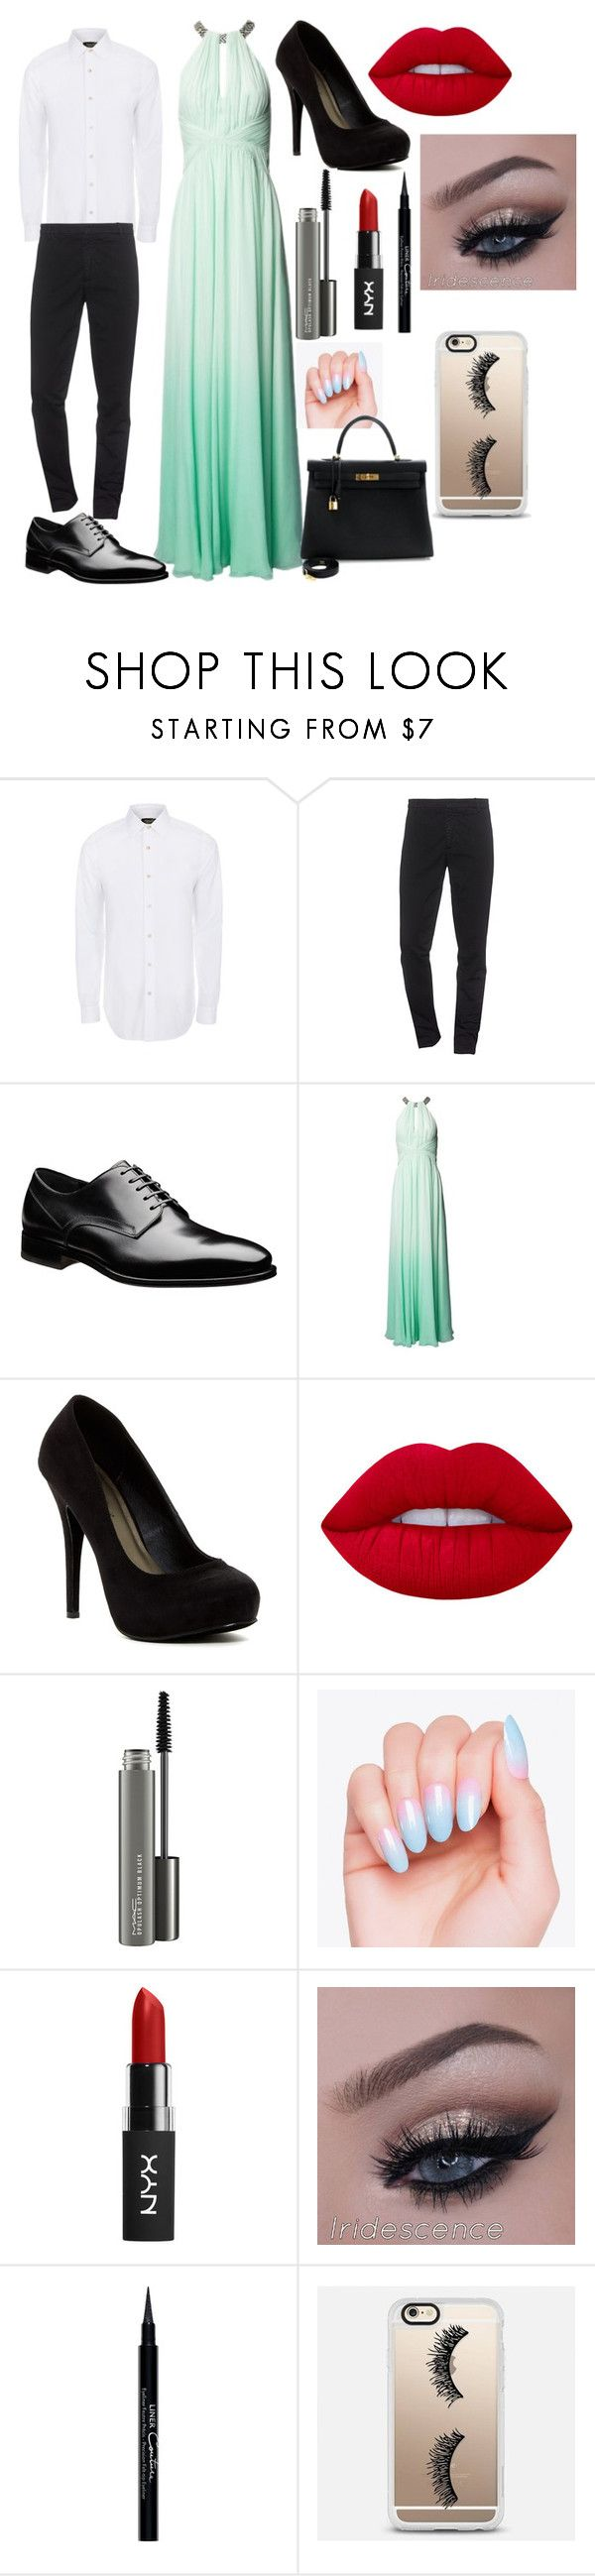 baile de finalistas homem e mulher by filipaladino on Polyvore featuring Matthew Williamson, Michael Antonio, Hermès, Casetify, Paul Smith, Kenzo, Lime Crime, MAC Cosmetics and Givenchy